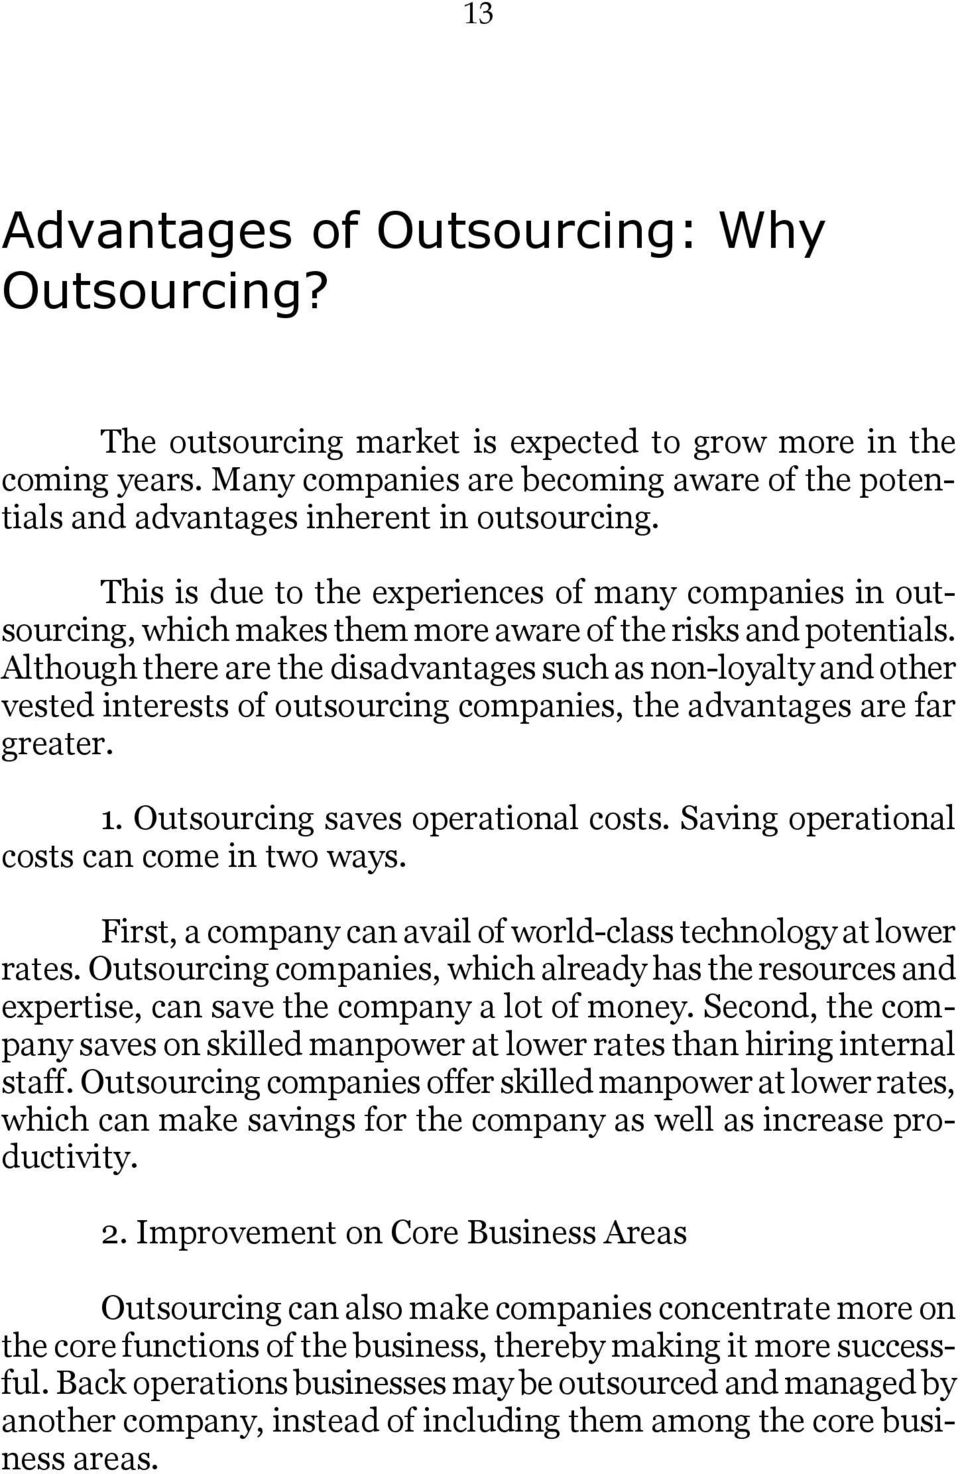 This is due to the experiences of many companies in outsourcing, which makes them more aware of the risks and potentials.